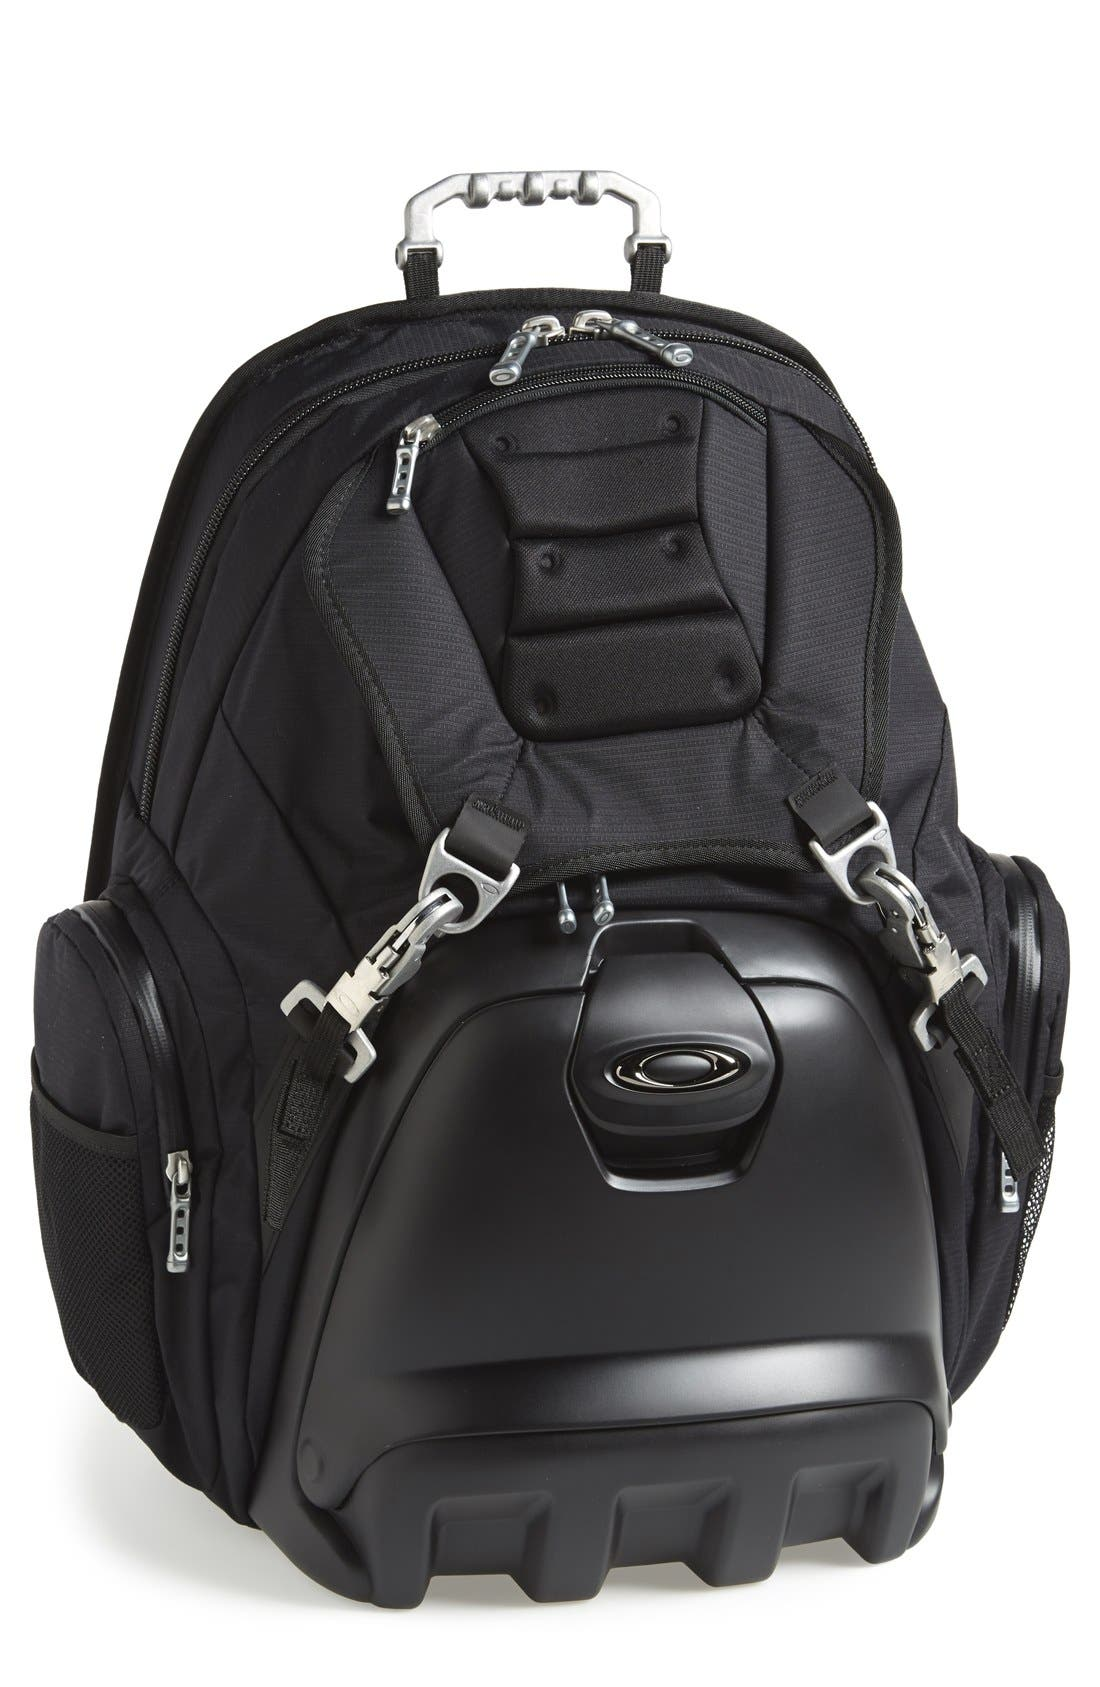 'Lunch Box' Cooler Backpack,                             Main thumbnail 1, color,                             001